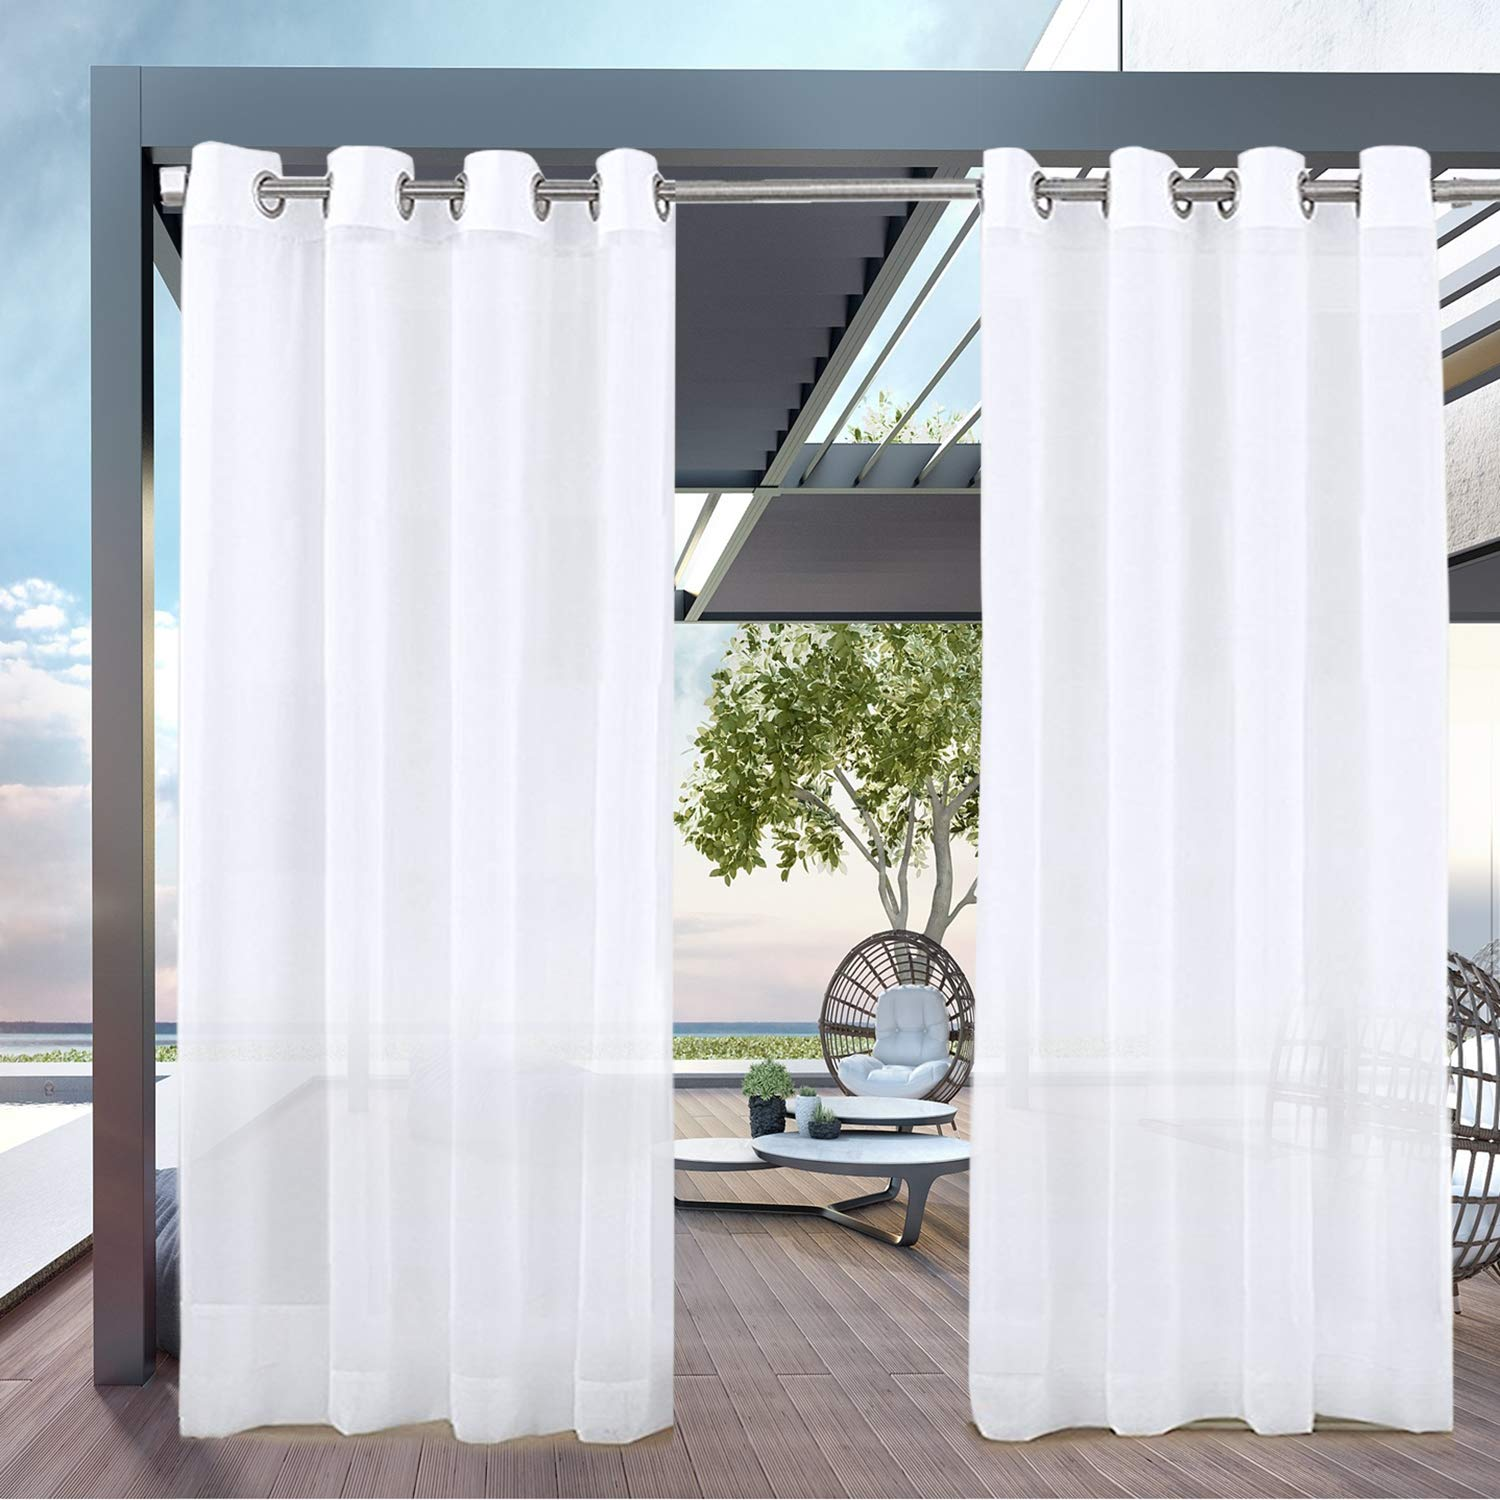 PRAVIVE Outdoor Sheer Curtains 84 - Waterproof Grommet Indoor Outdoor Curtains Patio Privacy White Sheer Drapes Blinds for Porch/Deck/Pergola with Tiebacks, W54 x L84 Inches, 2 Panels